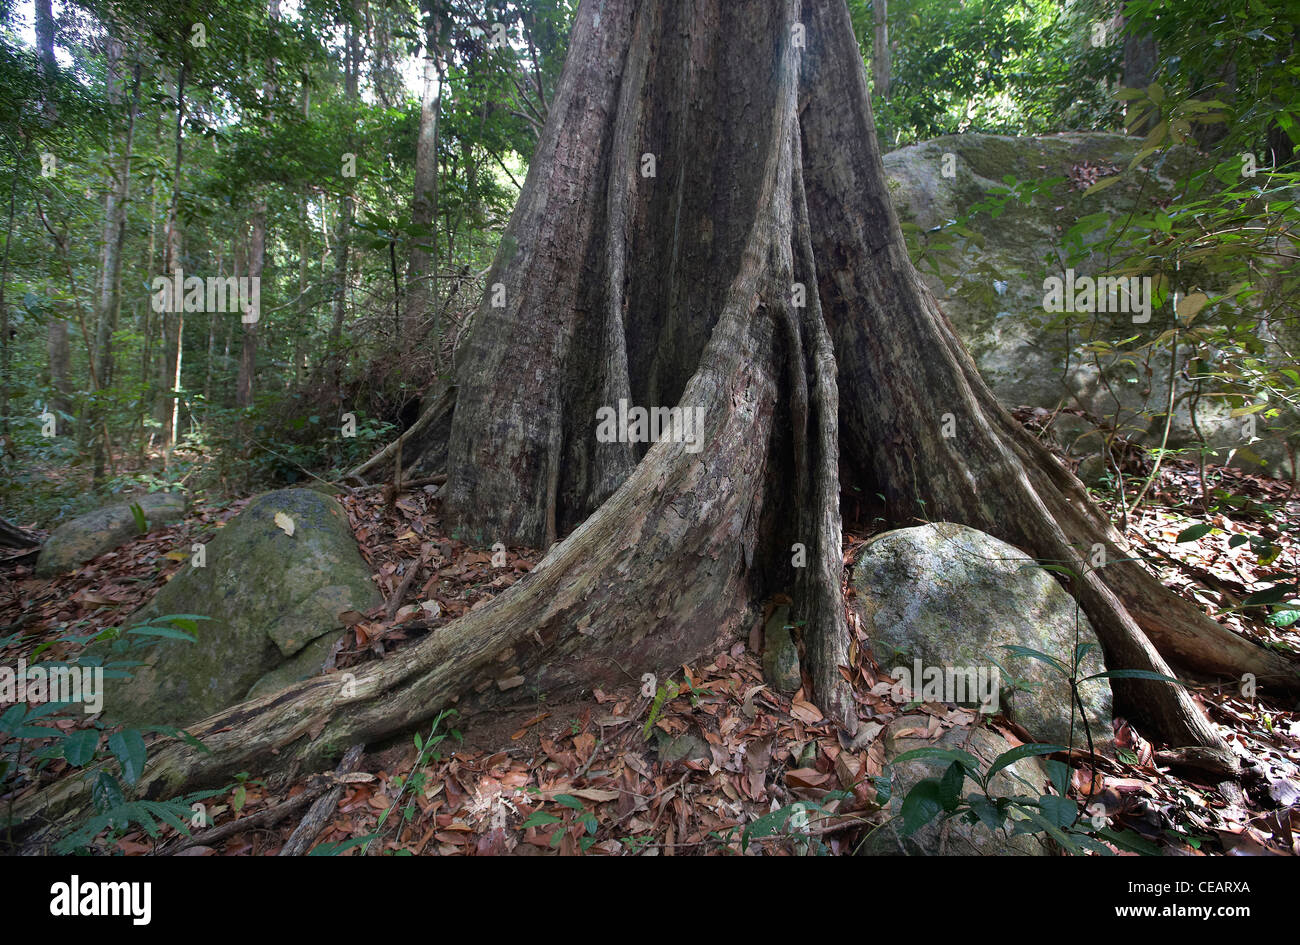 Buttress roots in the primary tropical rainforest, Rewa, Rupununi, Guyana,  South America